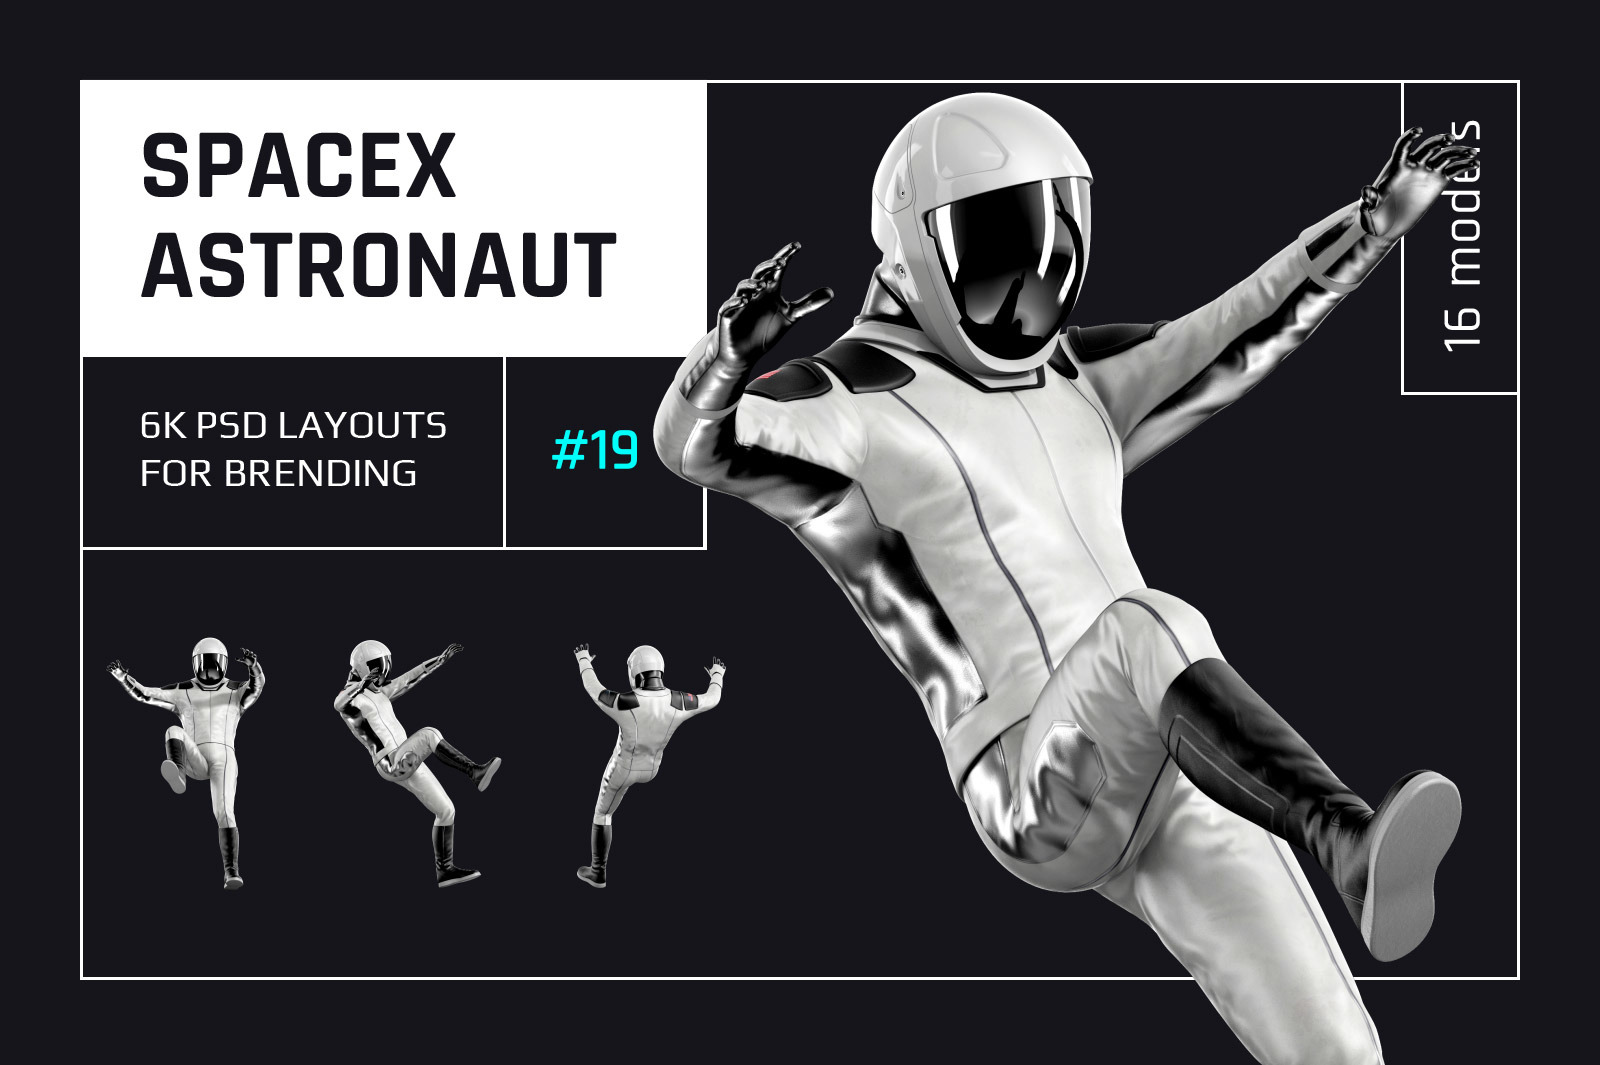 PSD Mockup 3D model SpaceX Astronaut #19